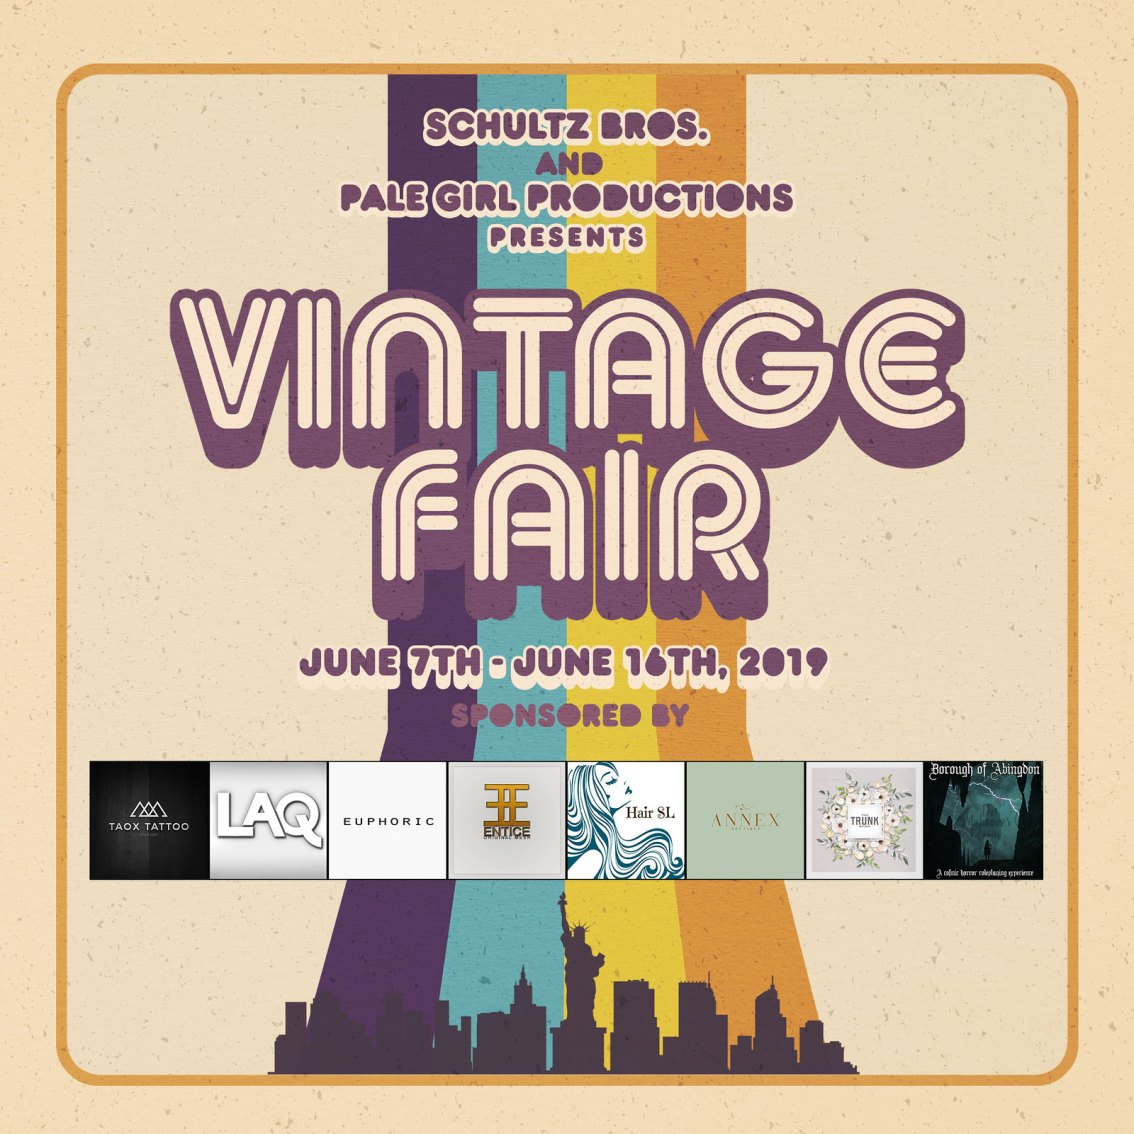 Vintage Fair 2019 – Last Few Hours!